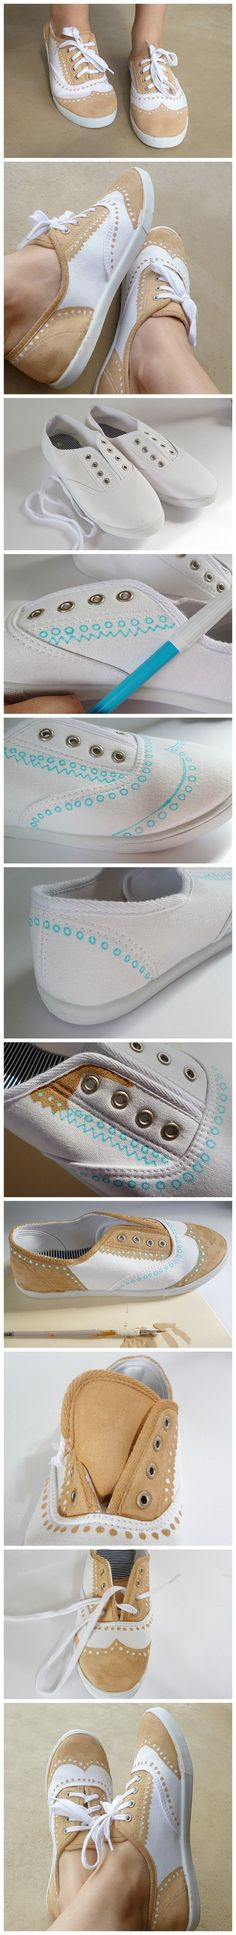 白布鞋变布洛克鞋,不是能工巧匠还真不行。(on a foreign blog) this explains it through the photos. Fabric pain the design on a plain white pair of sneakers